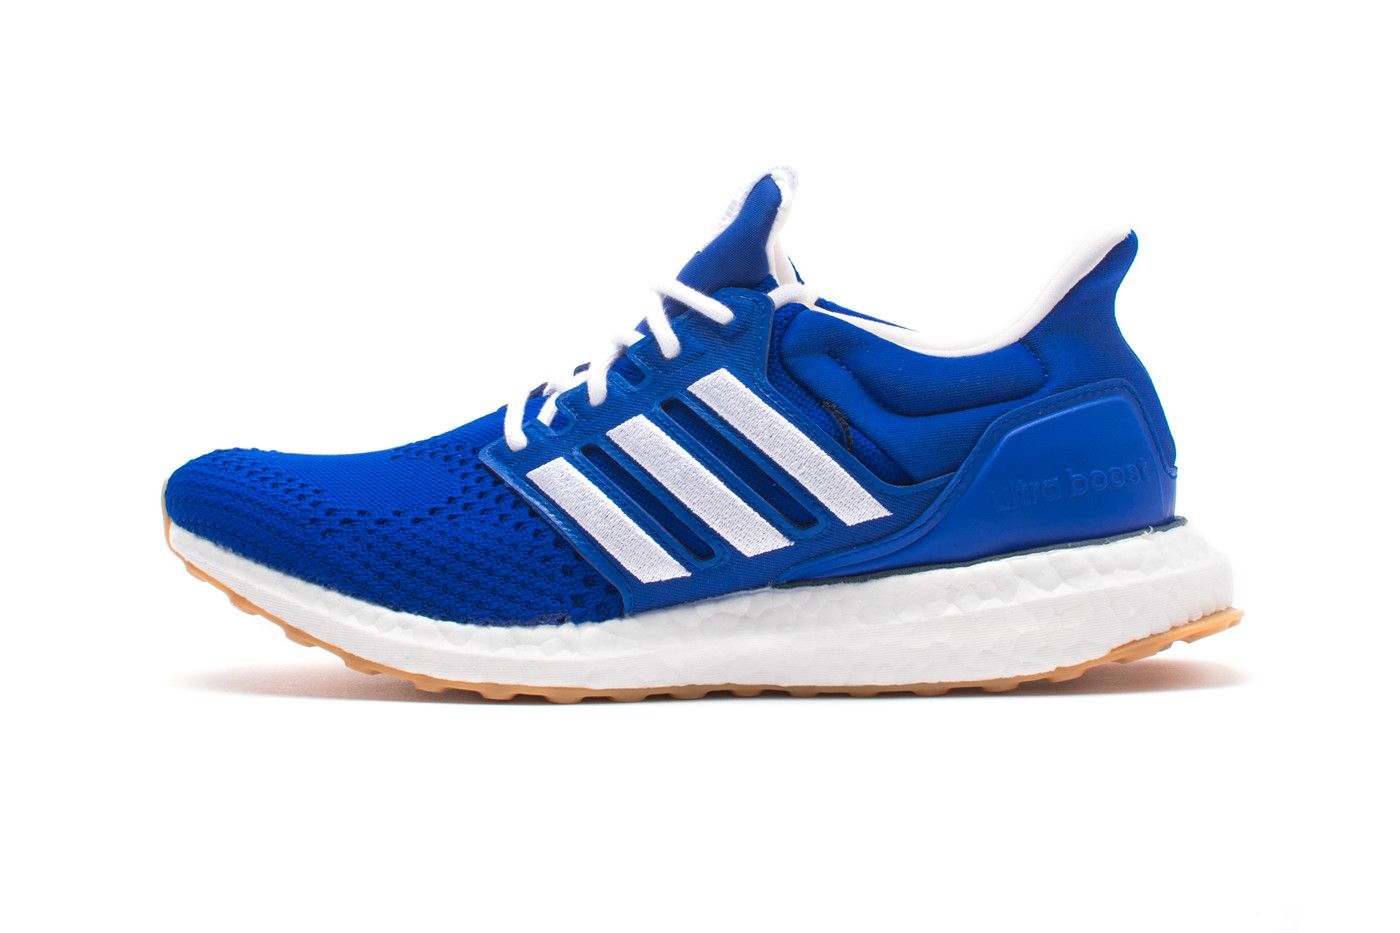 fb0c352da71a Engineered Garments x adidas UltraBOOST Release date info price consortium  sneaker colorway blue red white gum sole purchase online